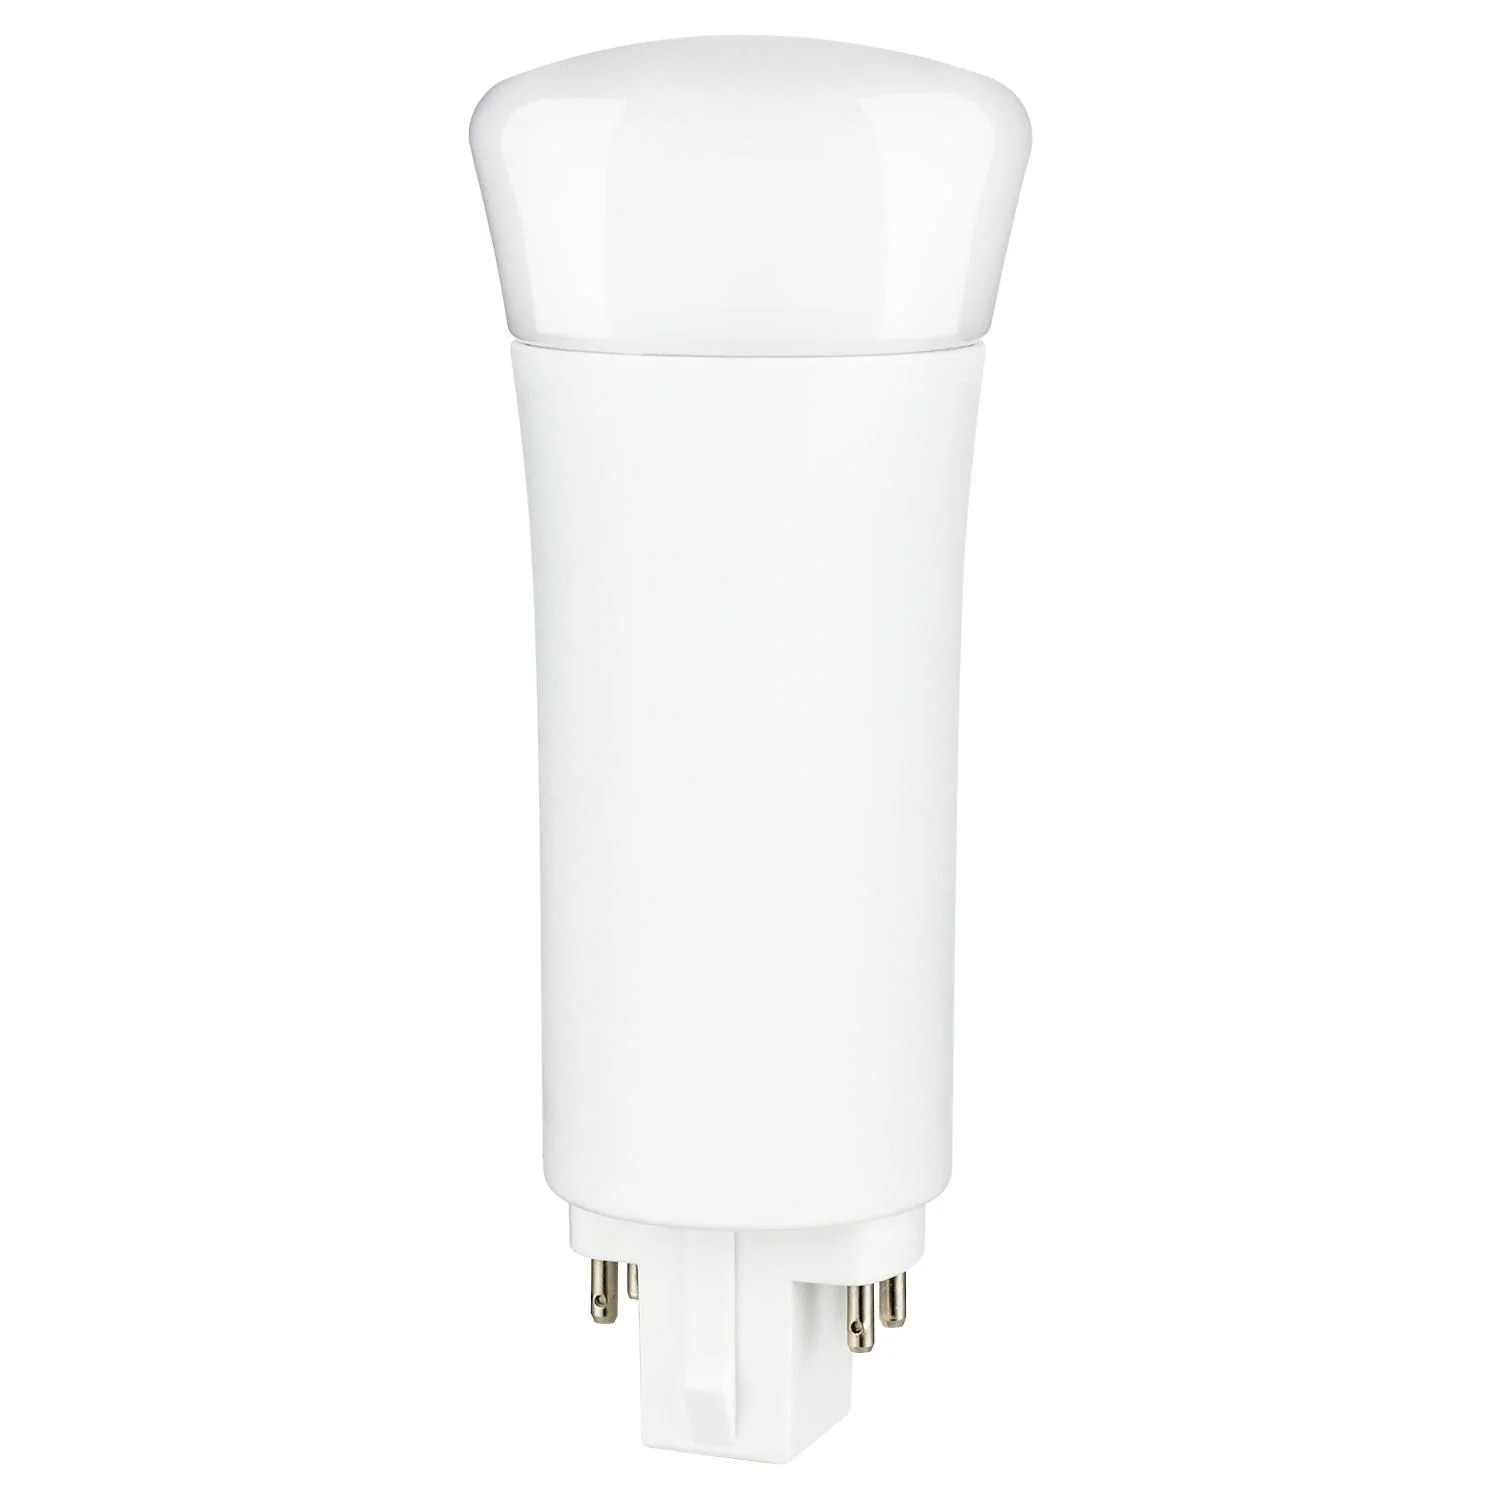 small resolution of sunlite 88211 su led 9w plv lamps g24q base 3500k neutral white bulbamerica